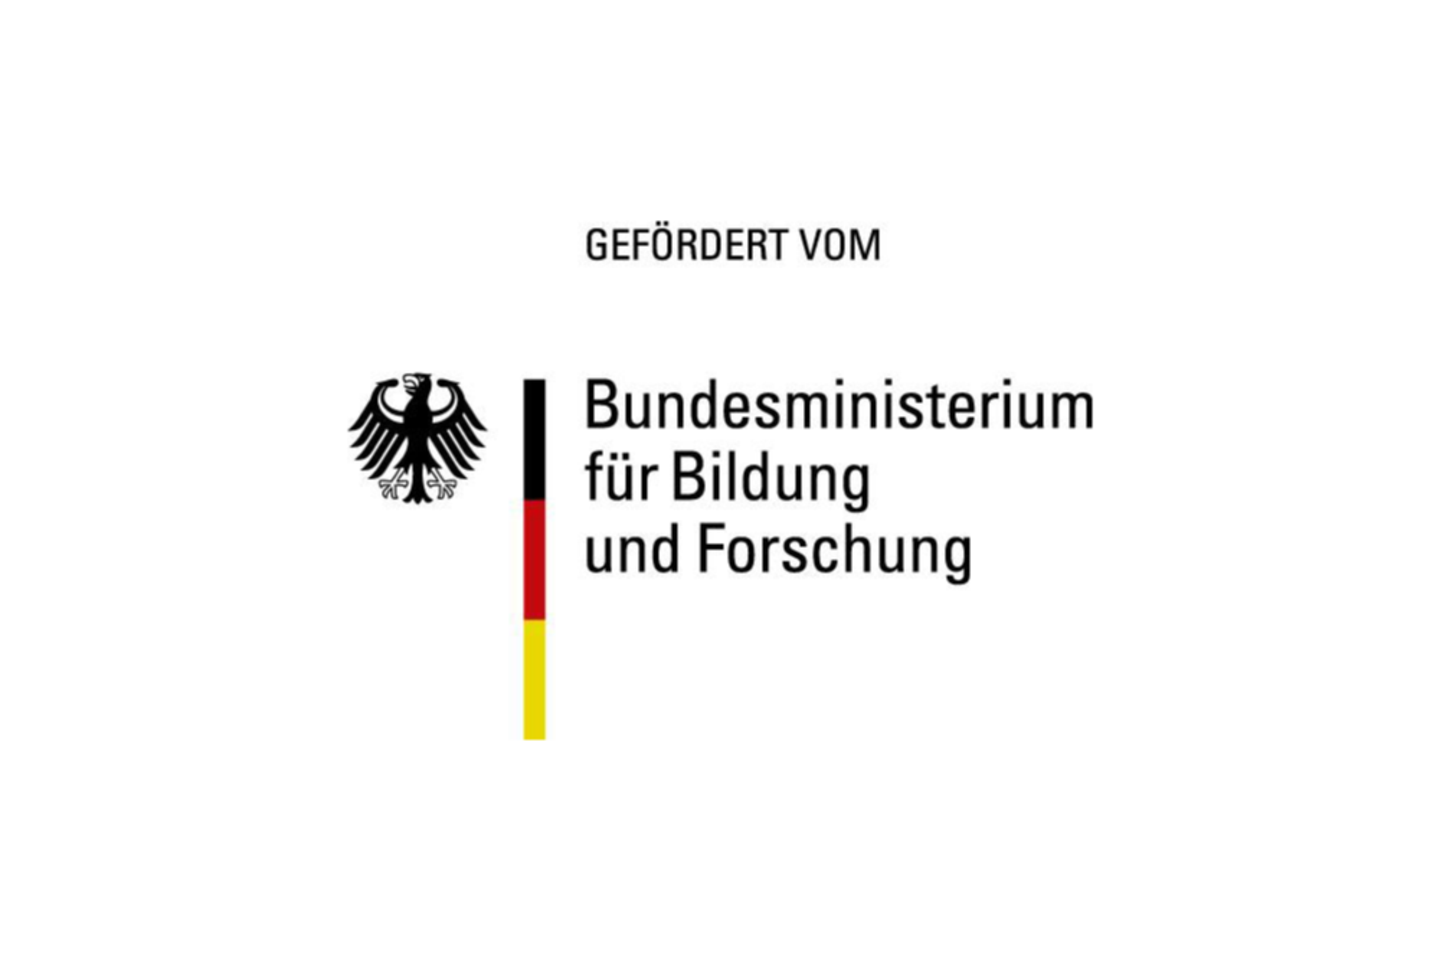 Federal Ministry of Education and Research – Bundesministerium für Bildung und Forschung